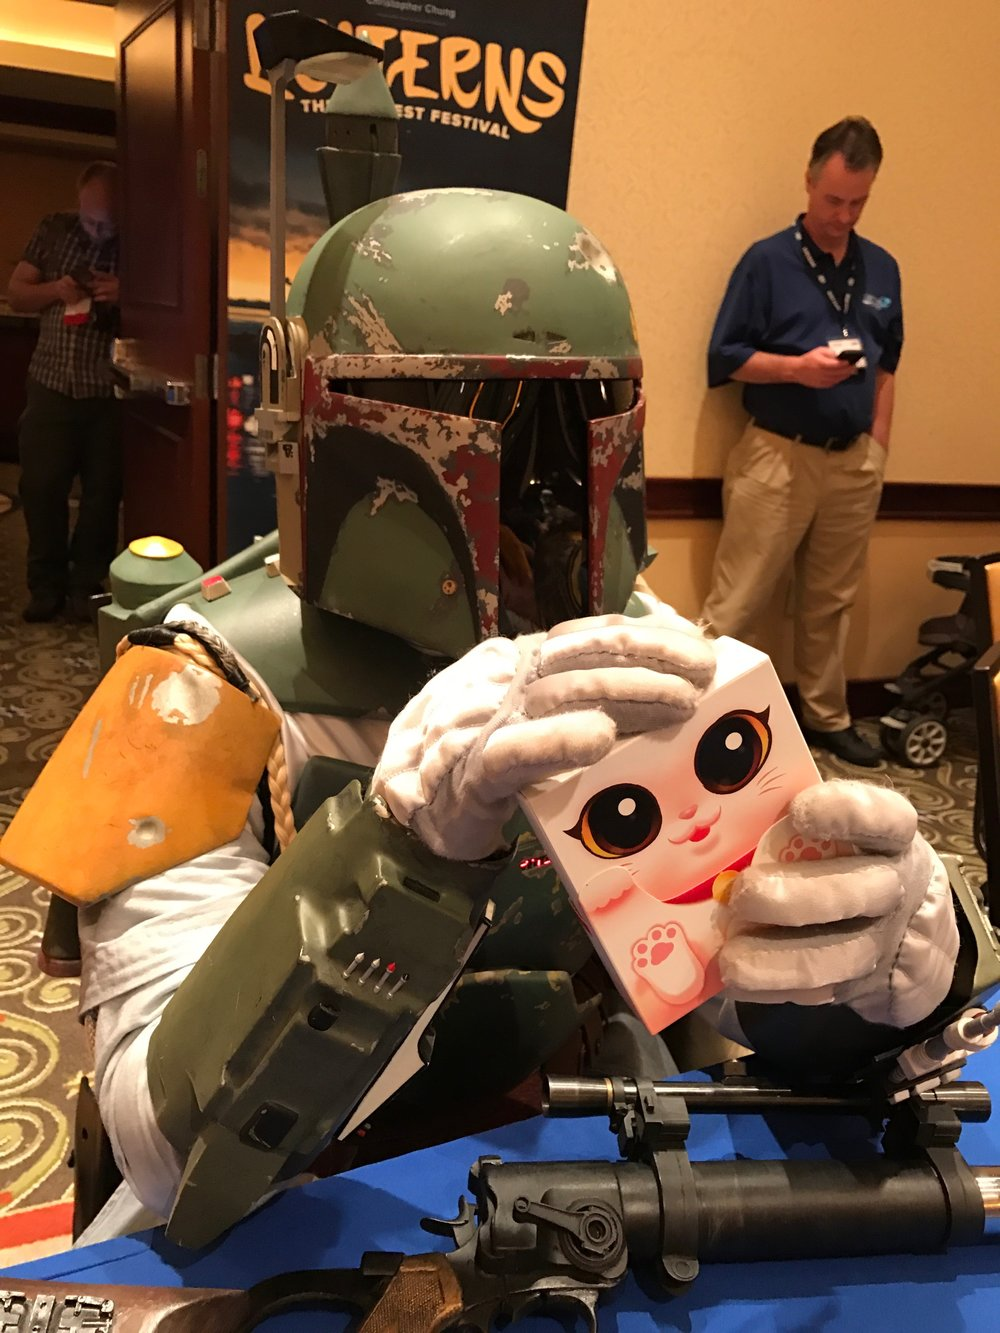 Even Fett can't resists the cuteness of Kitty Paw!